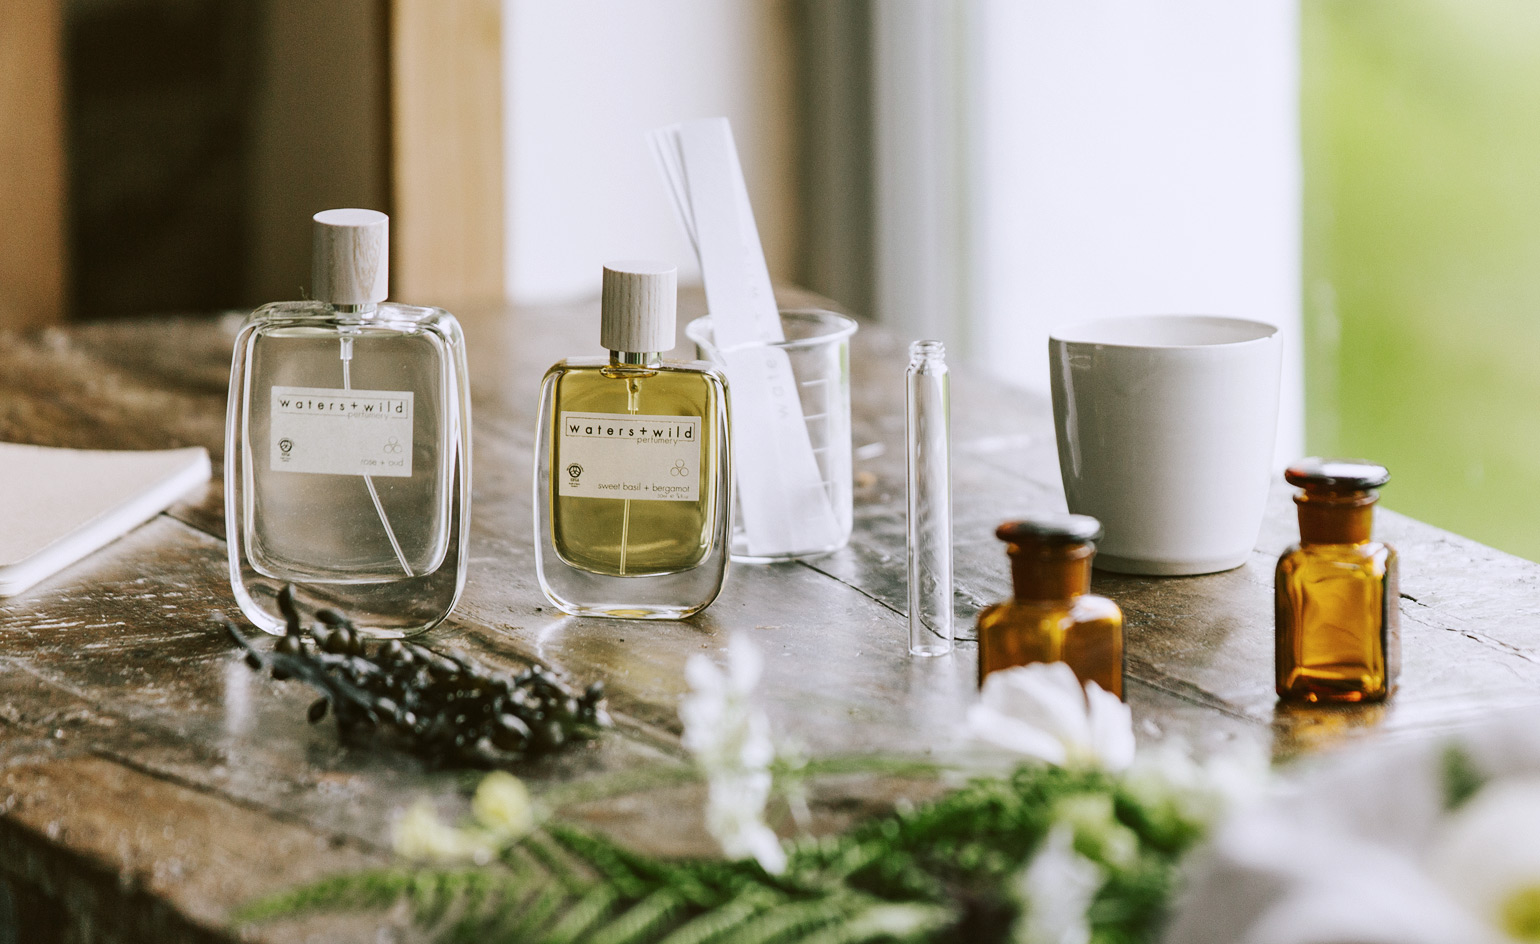 But Joan Woods Is Hoping To Change That With Waters Wild Producing Attractive Certified Organic Fragrances And Scented Candles From